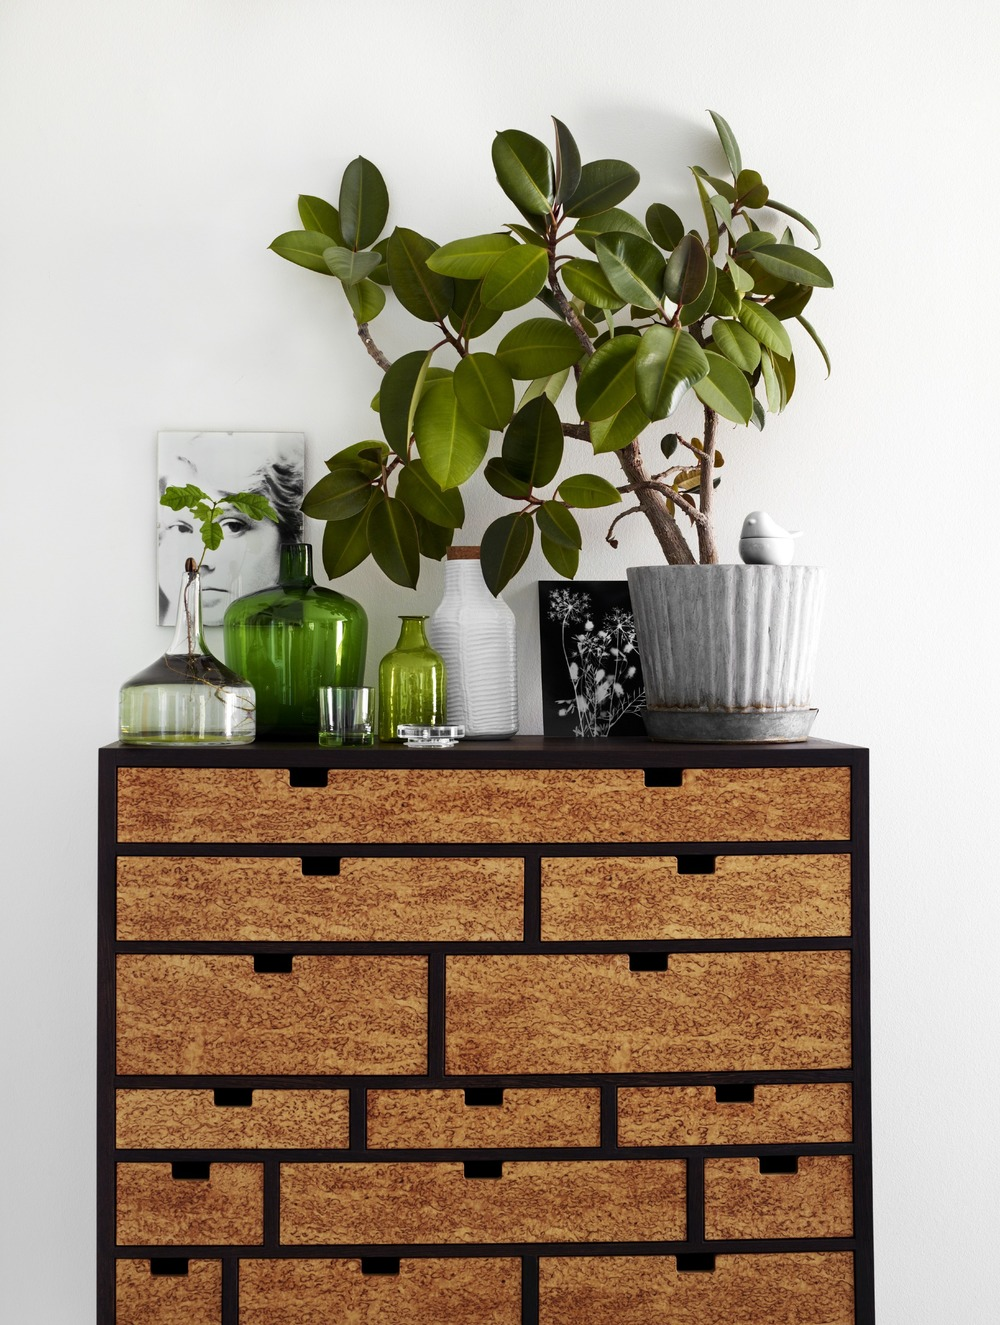 A lovely Rubber Plant spruces up this warm, organic dresser. Image Source: Tina Hellberg  via Cargo Collective